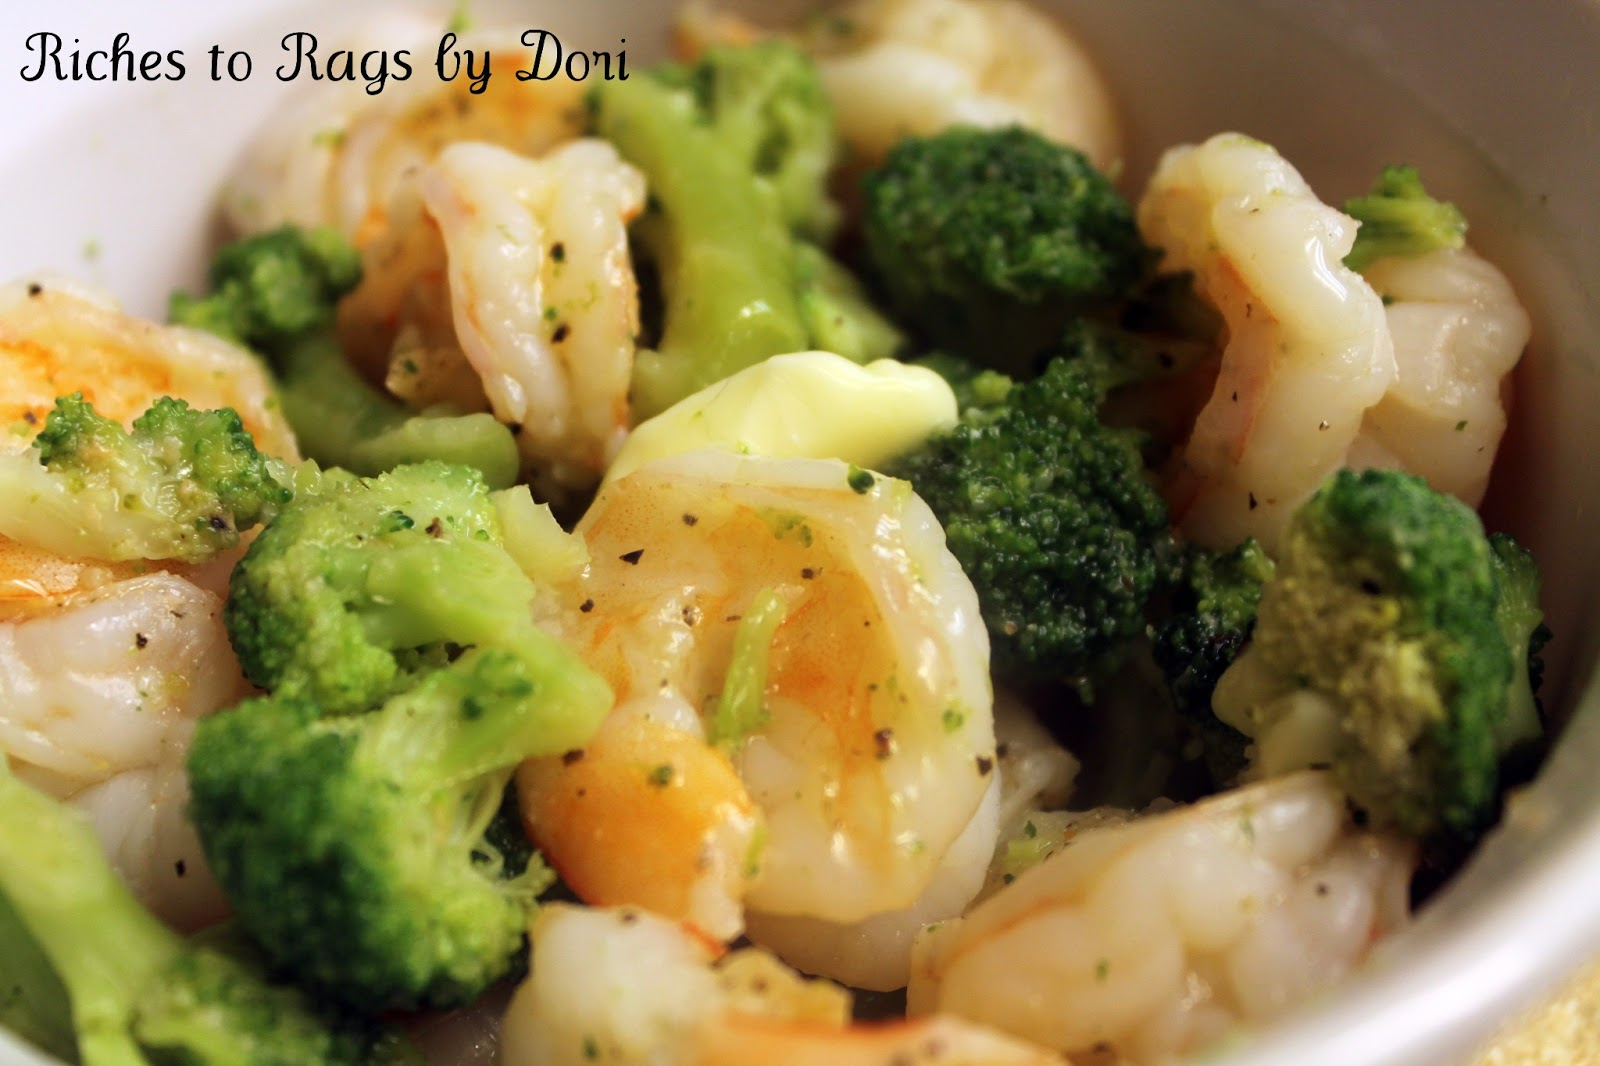 Riches to rags by dori steamed shrimp and broccoli with rice steamed shrimp and broccoli with rice cooker and steamer giveaway forumfinder Choice Image